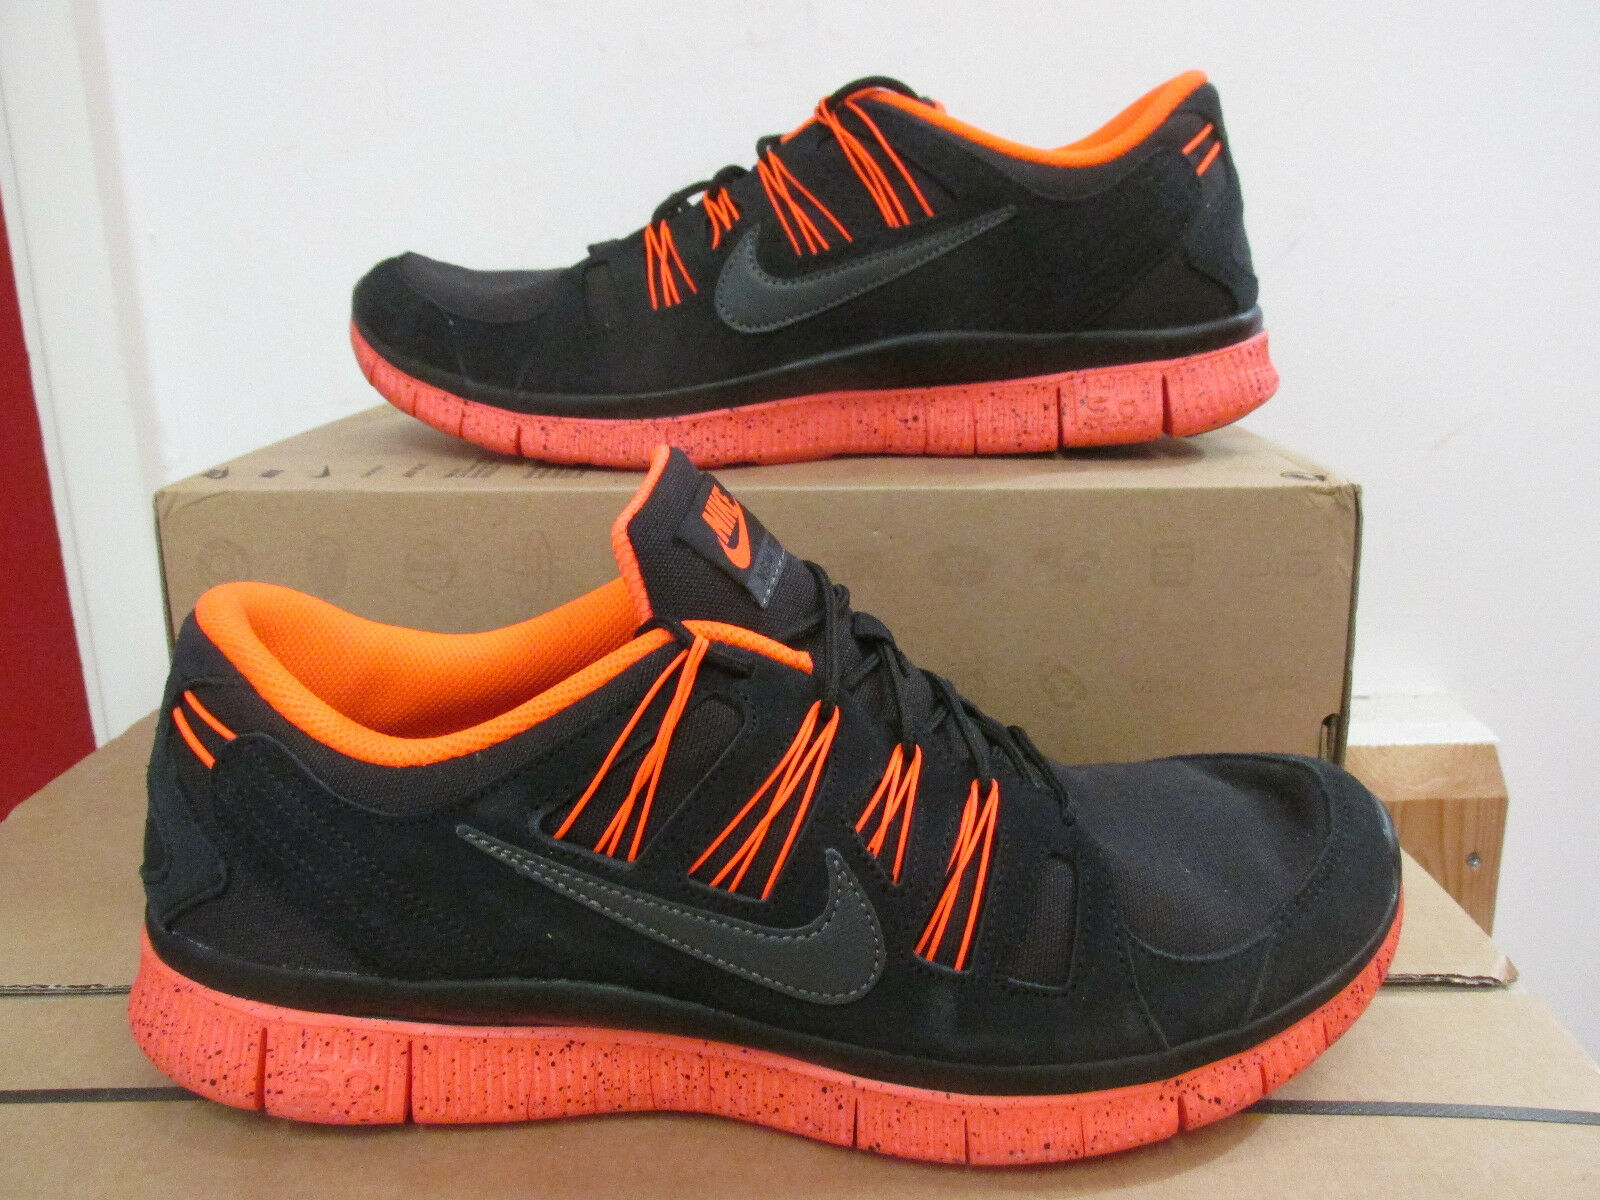 nike free 5.0 ext trainers 580530 060 sneakers shoes CLEARANCE